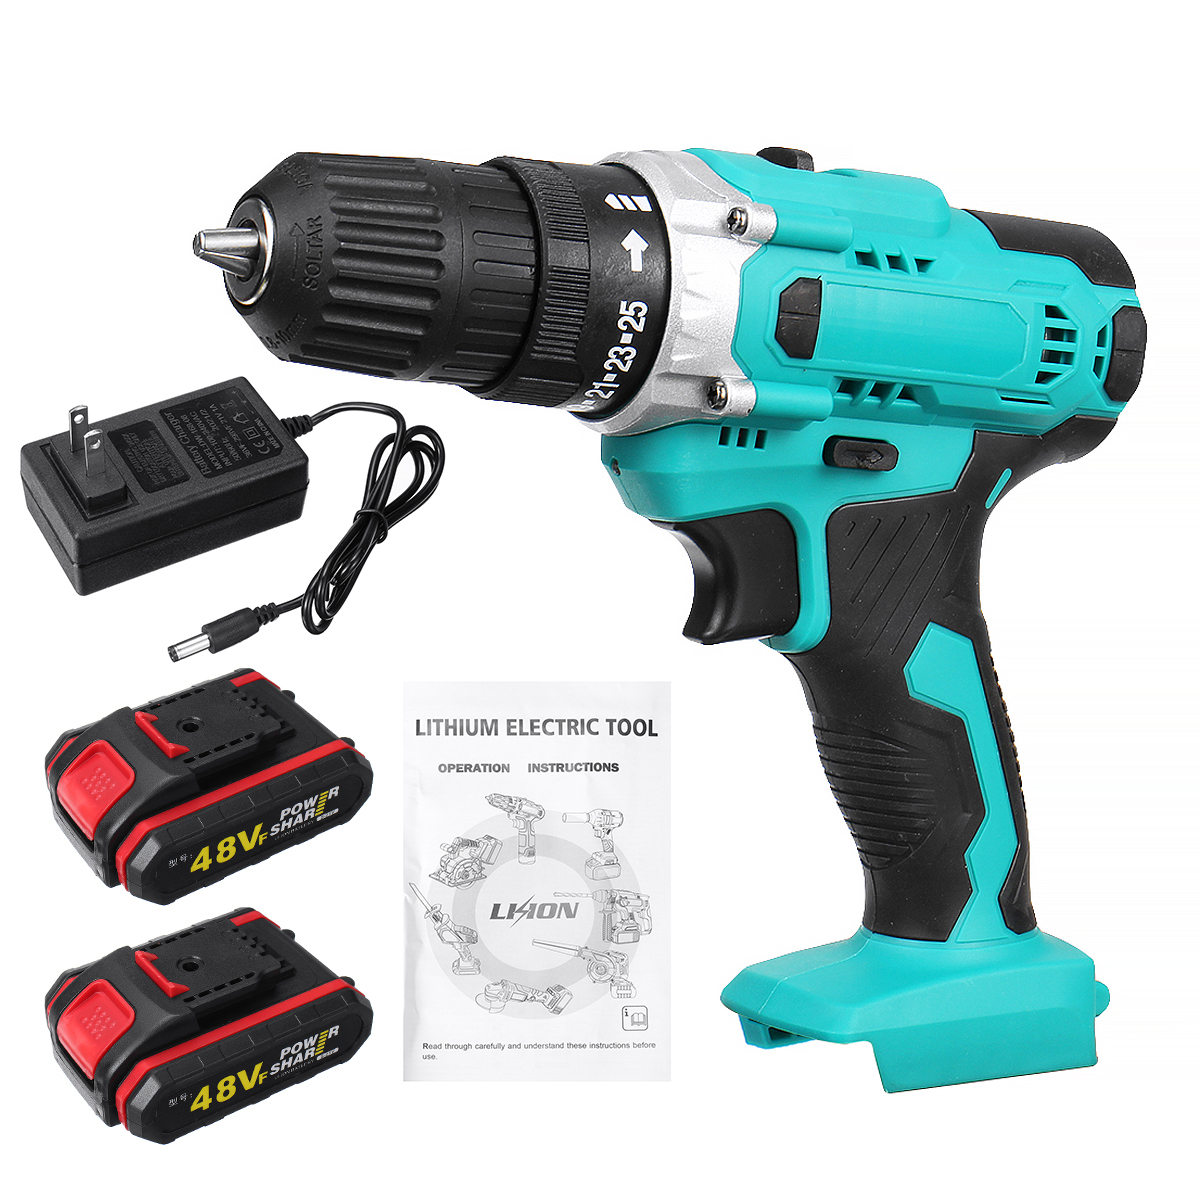 48Vf 3 in 1 Multifunctional Cordless Drill Electric Torque Wrench Screwdriver Drill 3/8-Inch Chuck Cordless Impact Drill